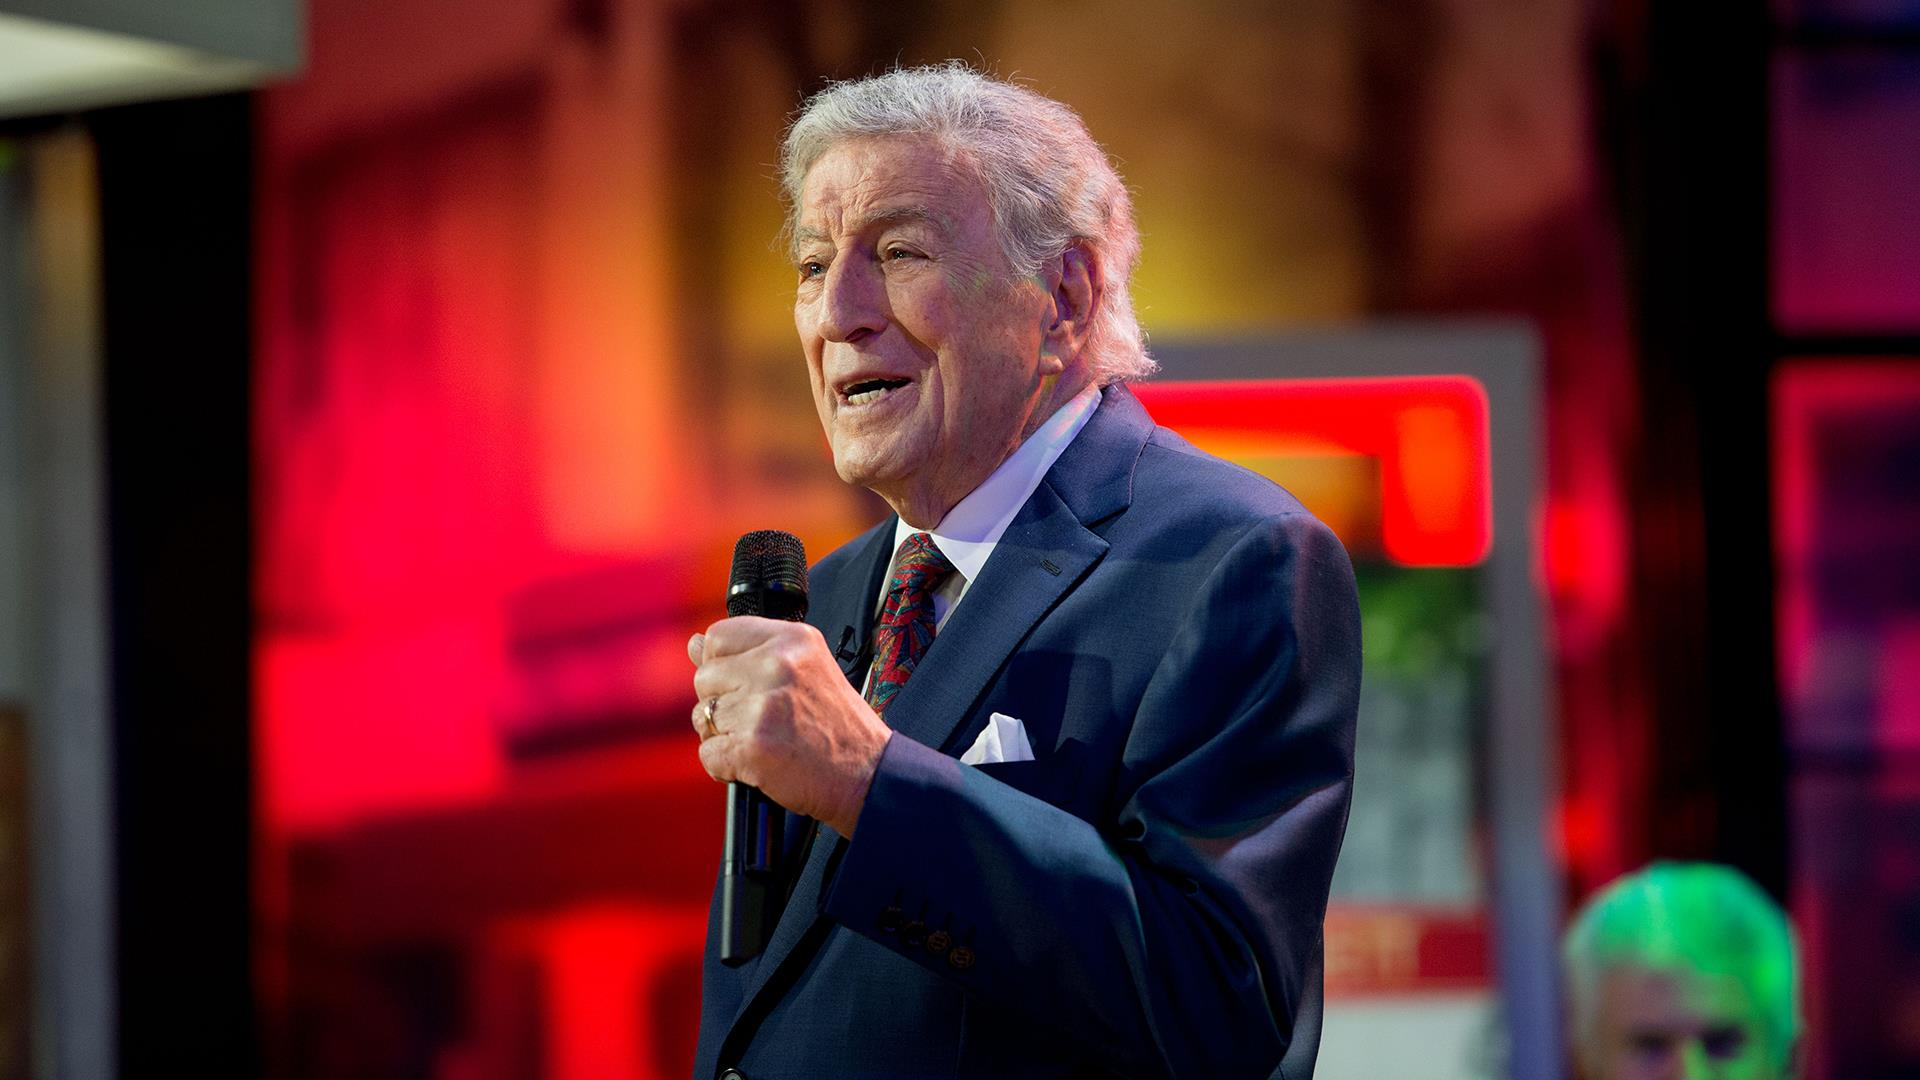 Watch Tony Bennett perform 'I'll Be Home for Christmas' live on ...